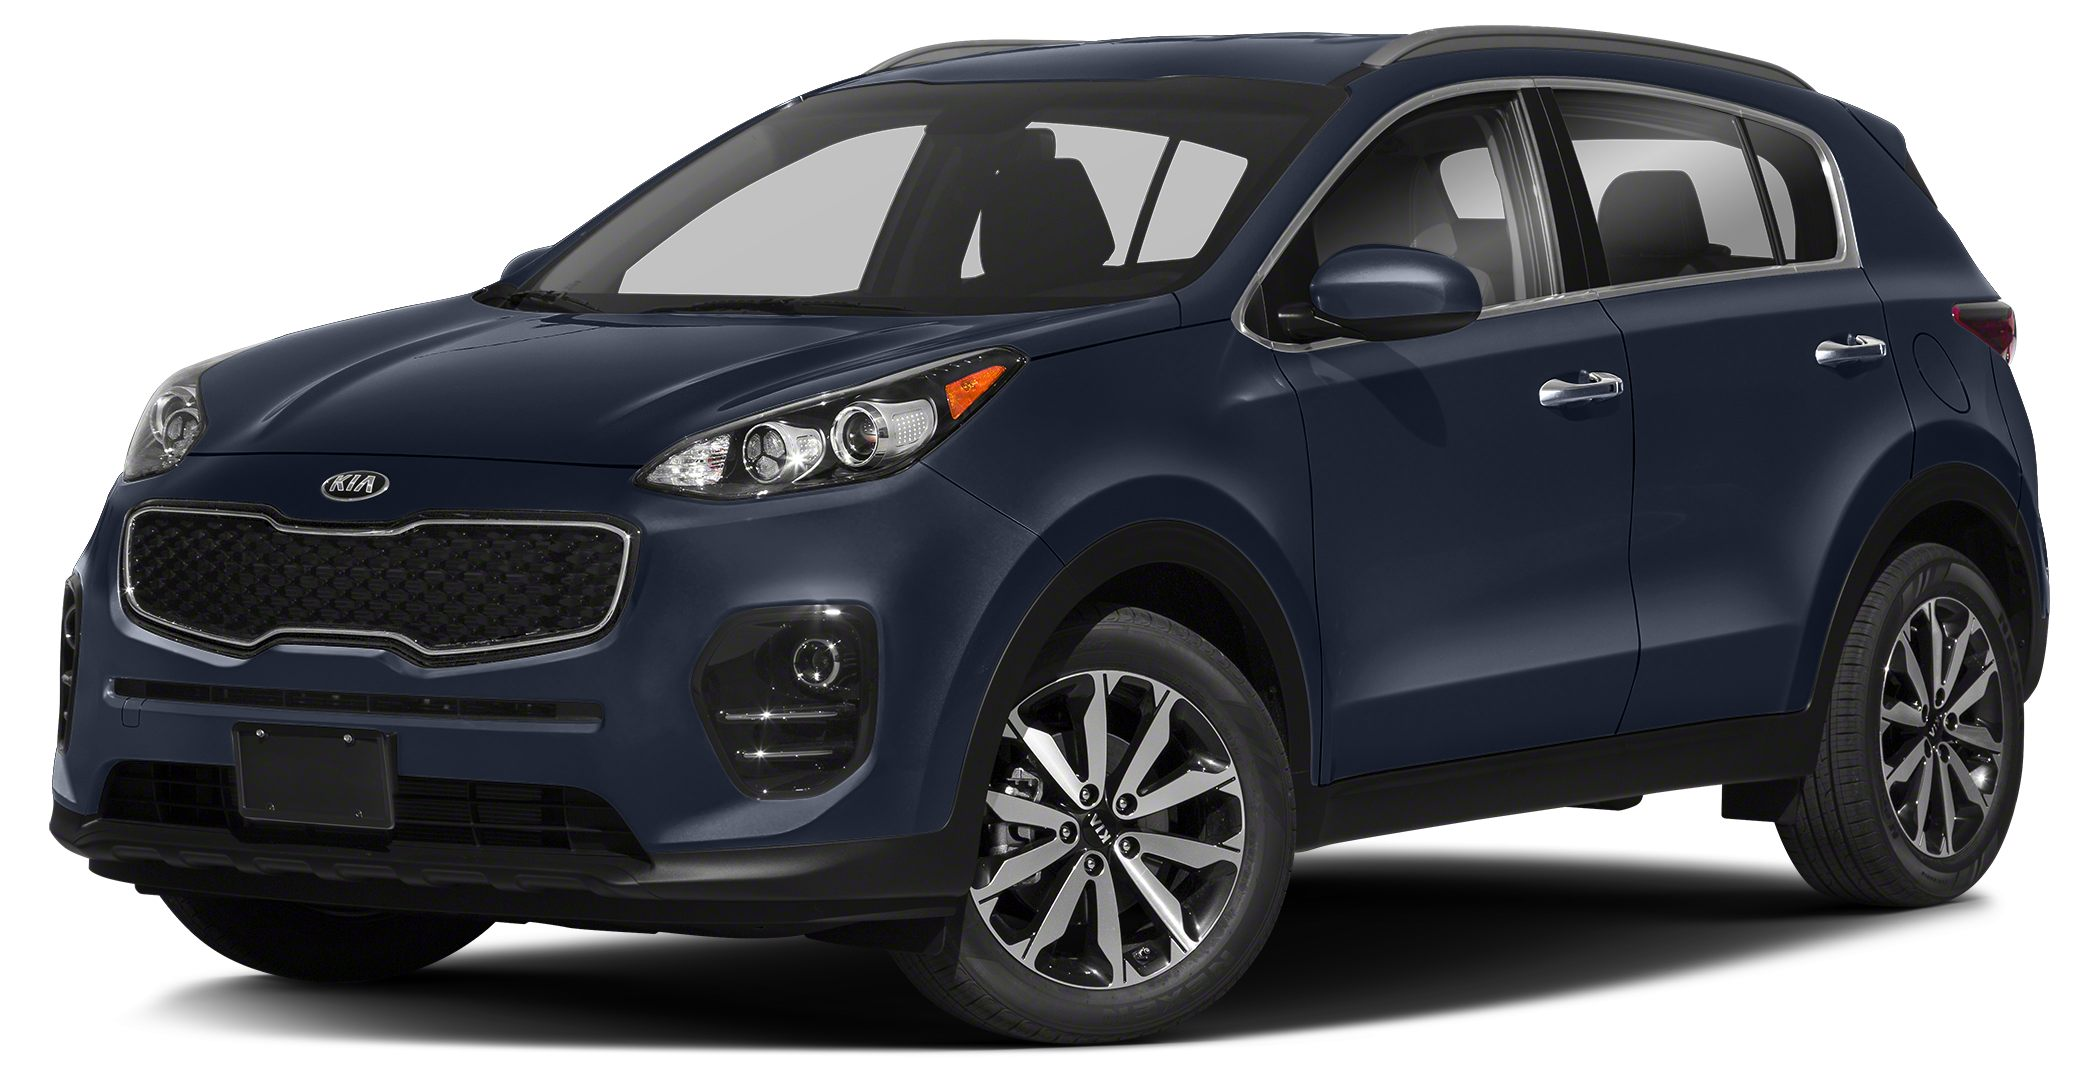 2017 Kia Sportage EX At Sunset Kia of Sarasota we pride ourselves on exceptional customer service